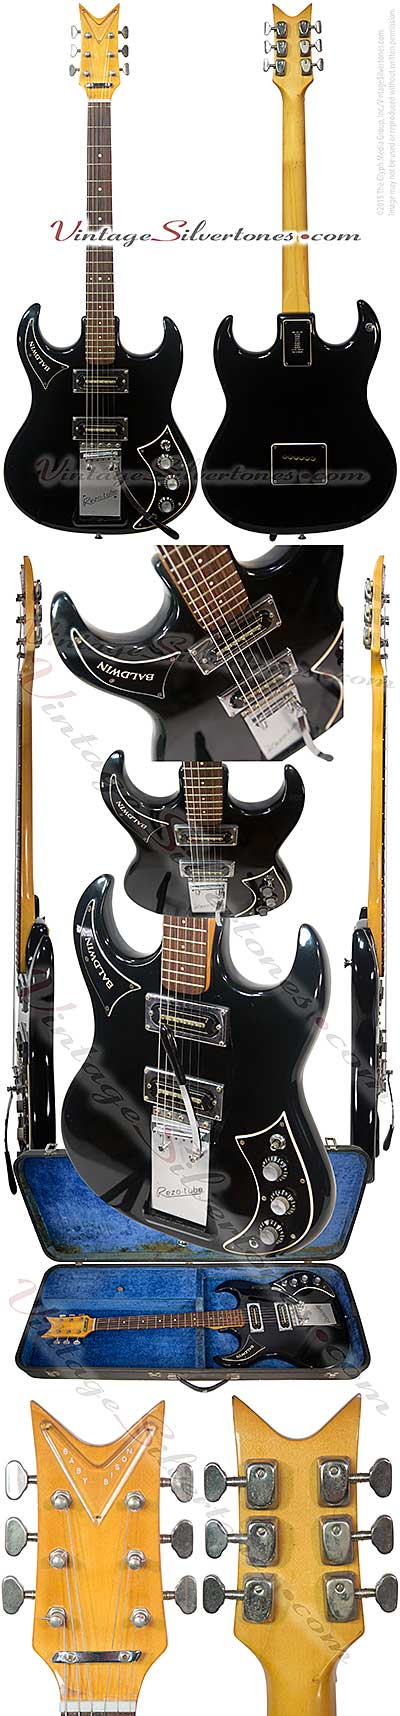 Baldwin Burn Baby Bison solid body electric guitar with Rezo-tube whammy bar, double cutaway 2 pu, single coil, double coil stack, black 1965